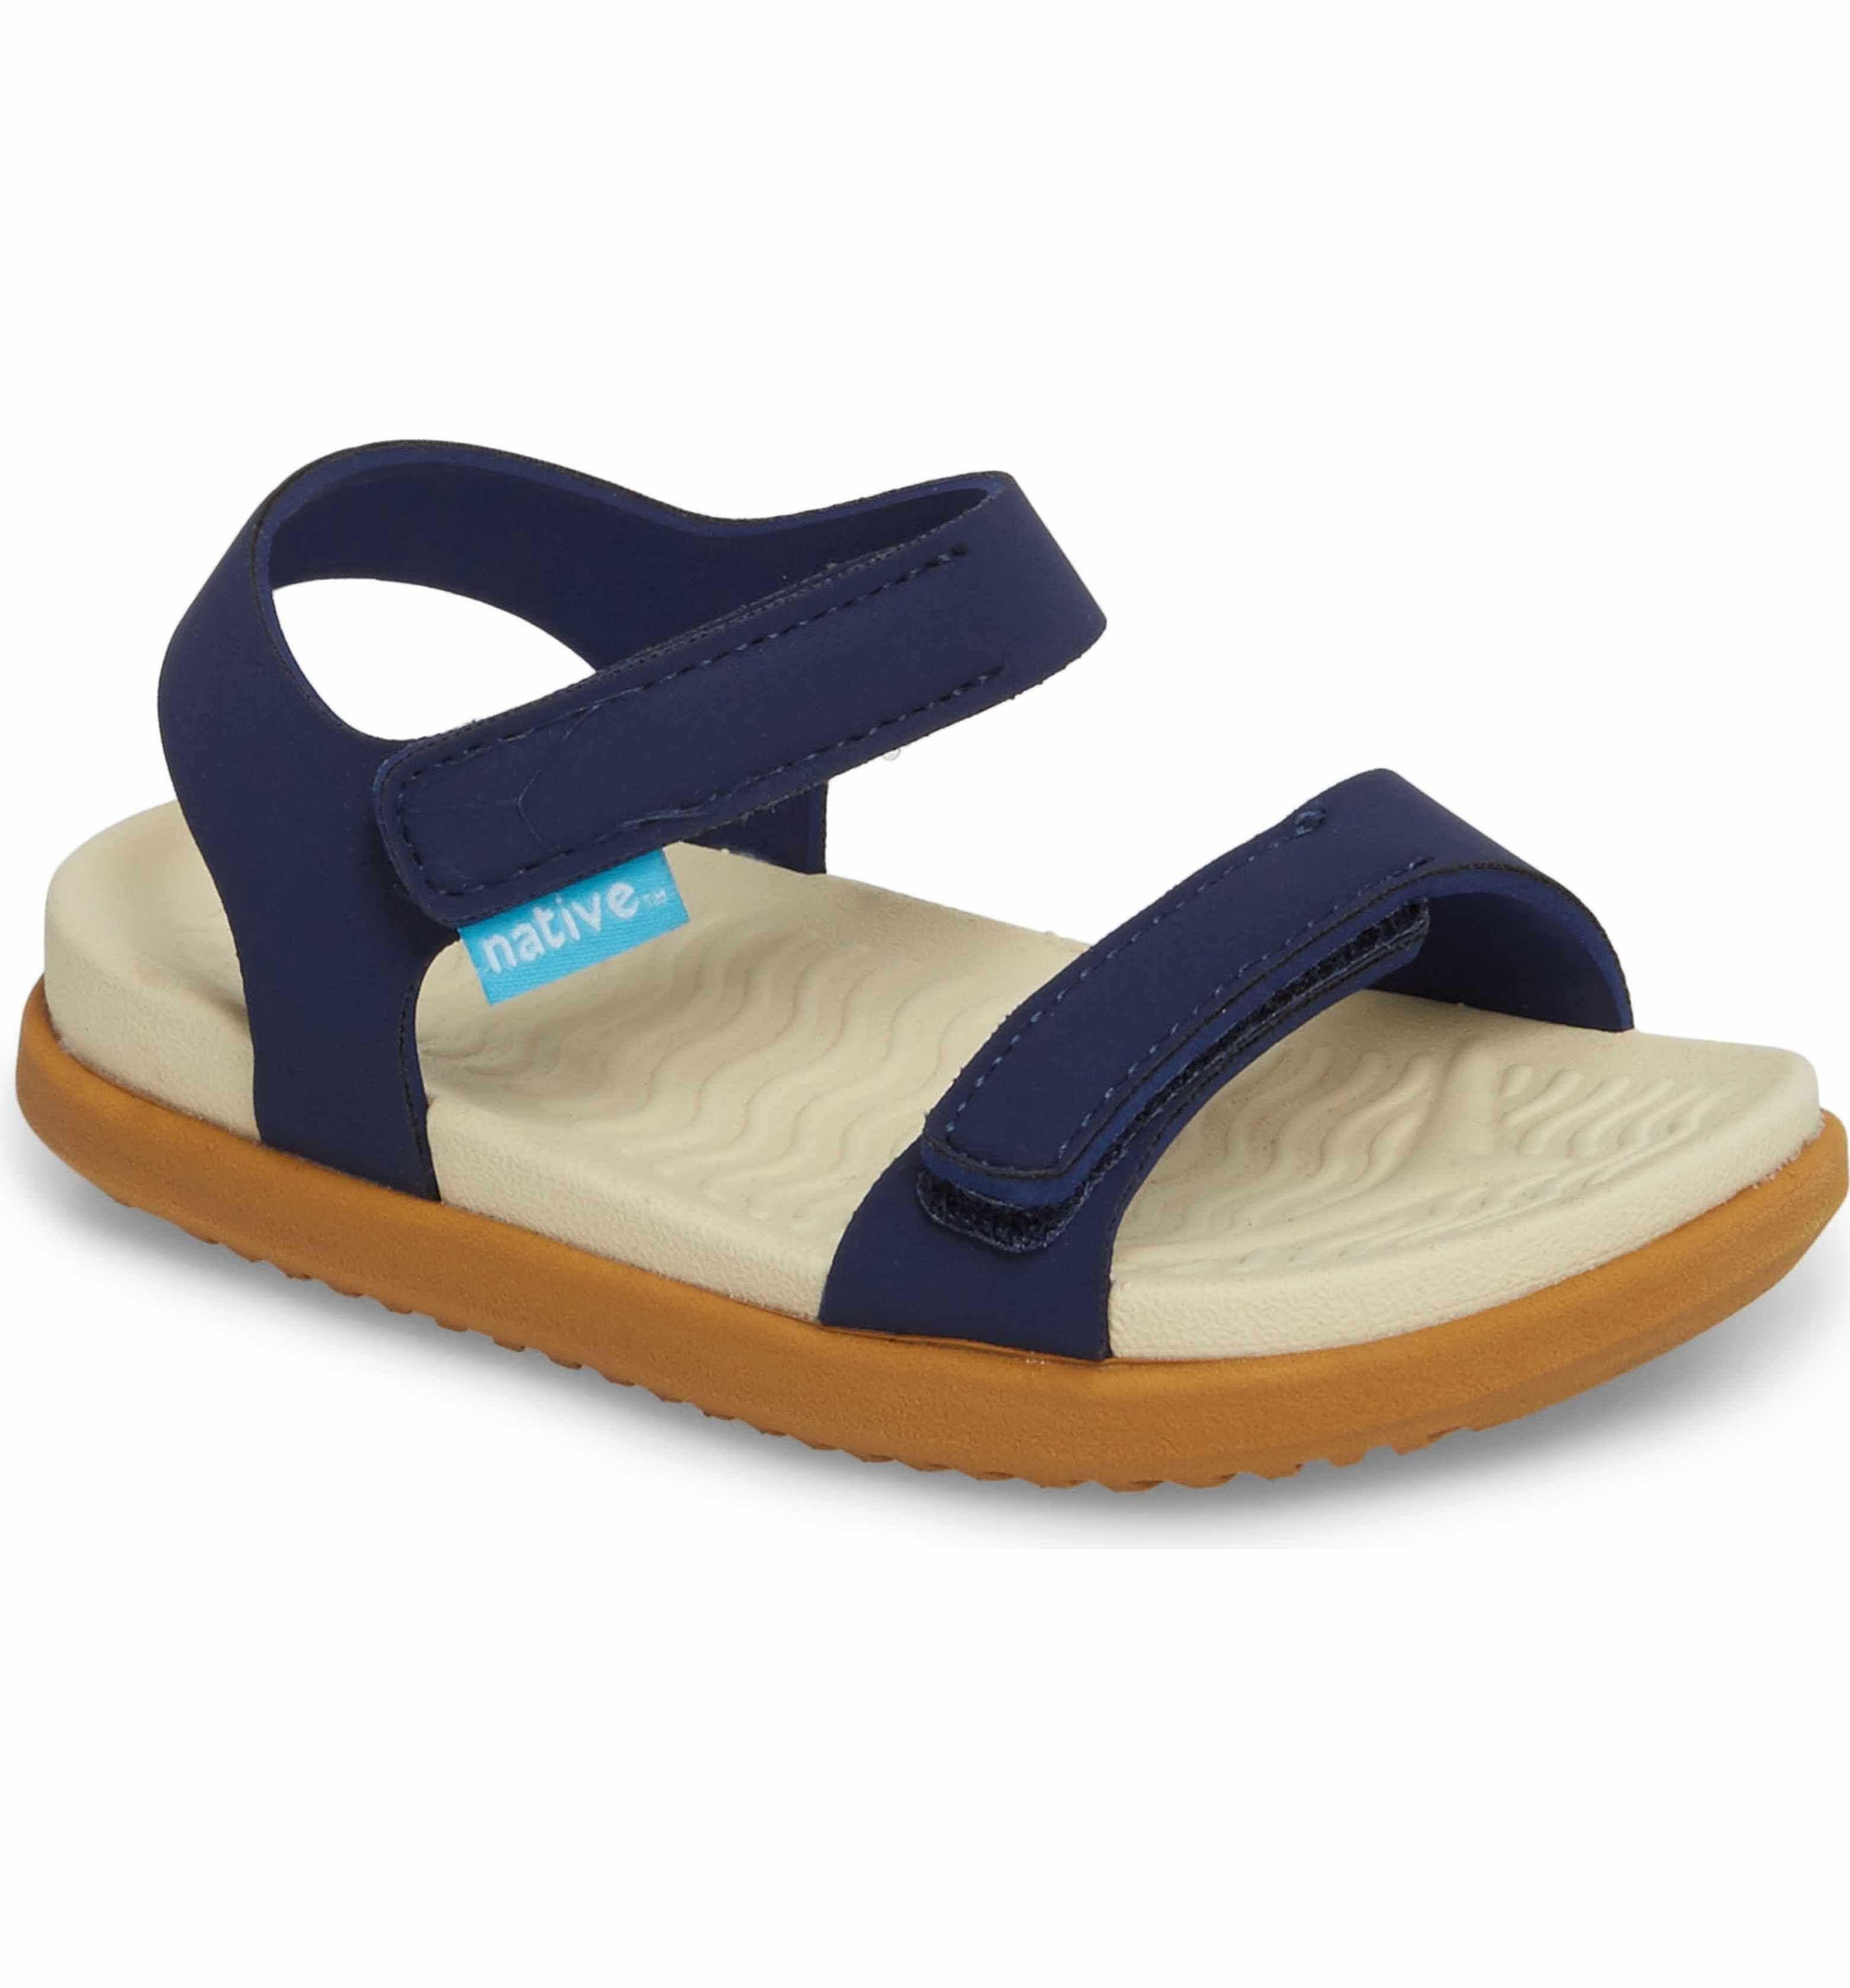 Pin on Child sandals